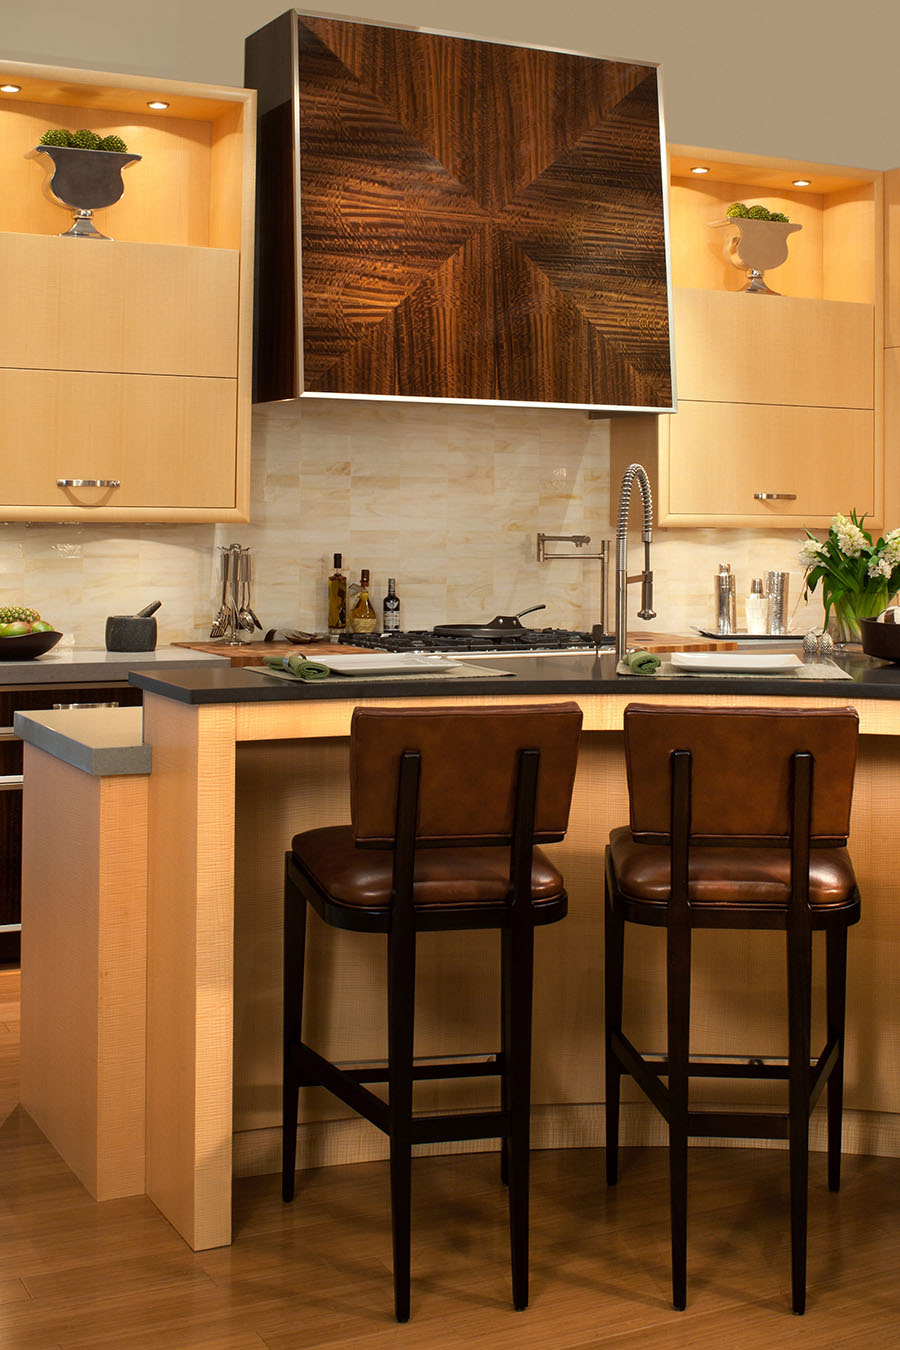 on the light side exquisite kitchen design Intriguing patters and textures